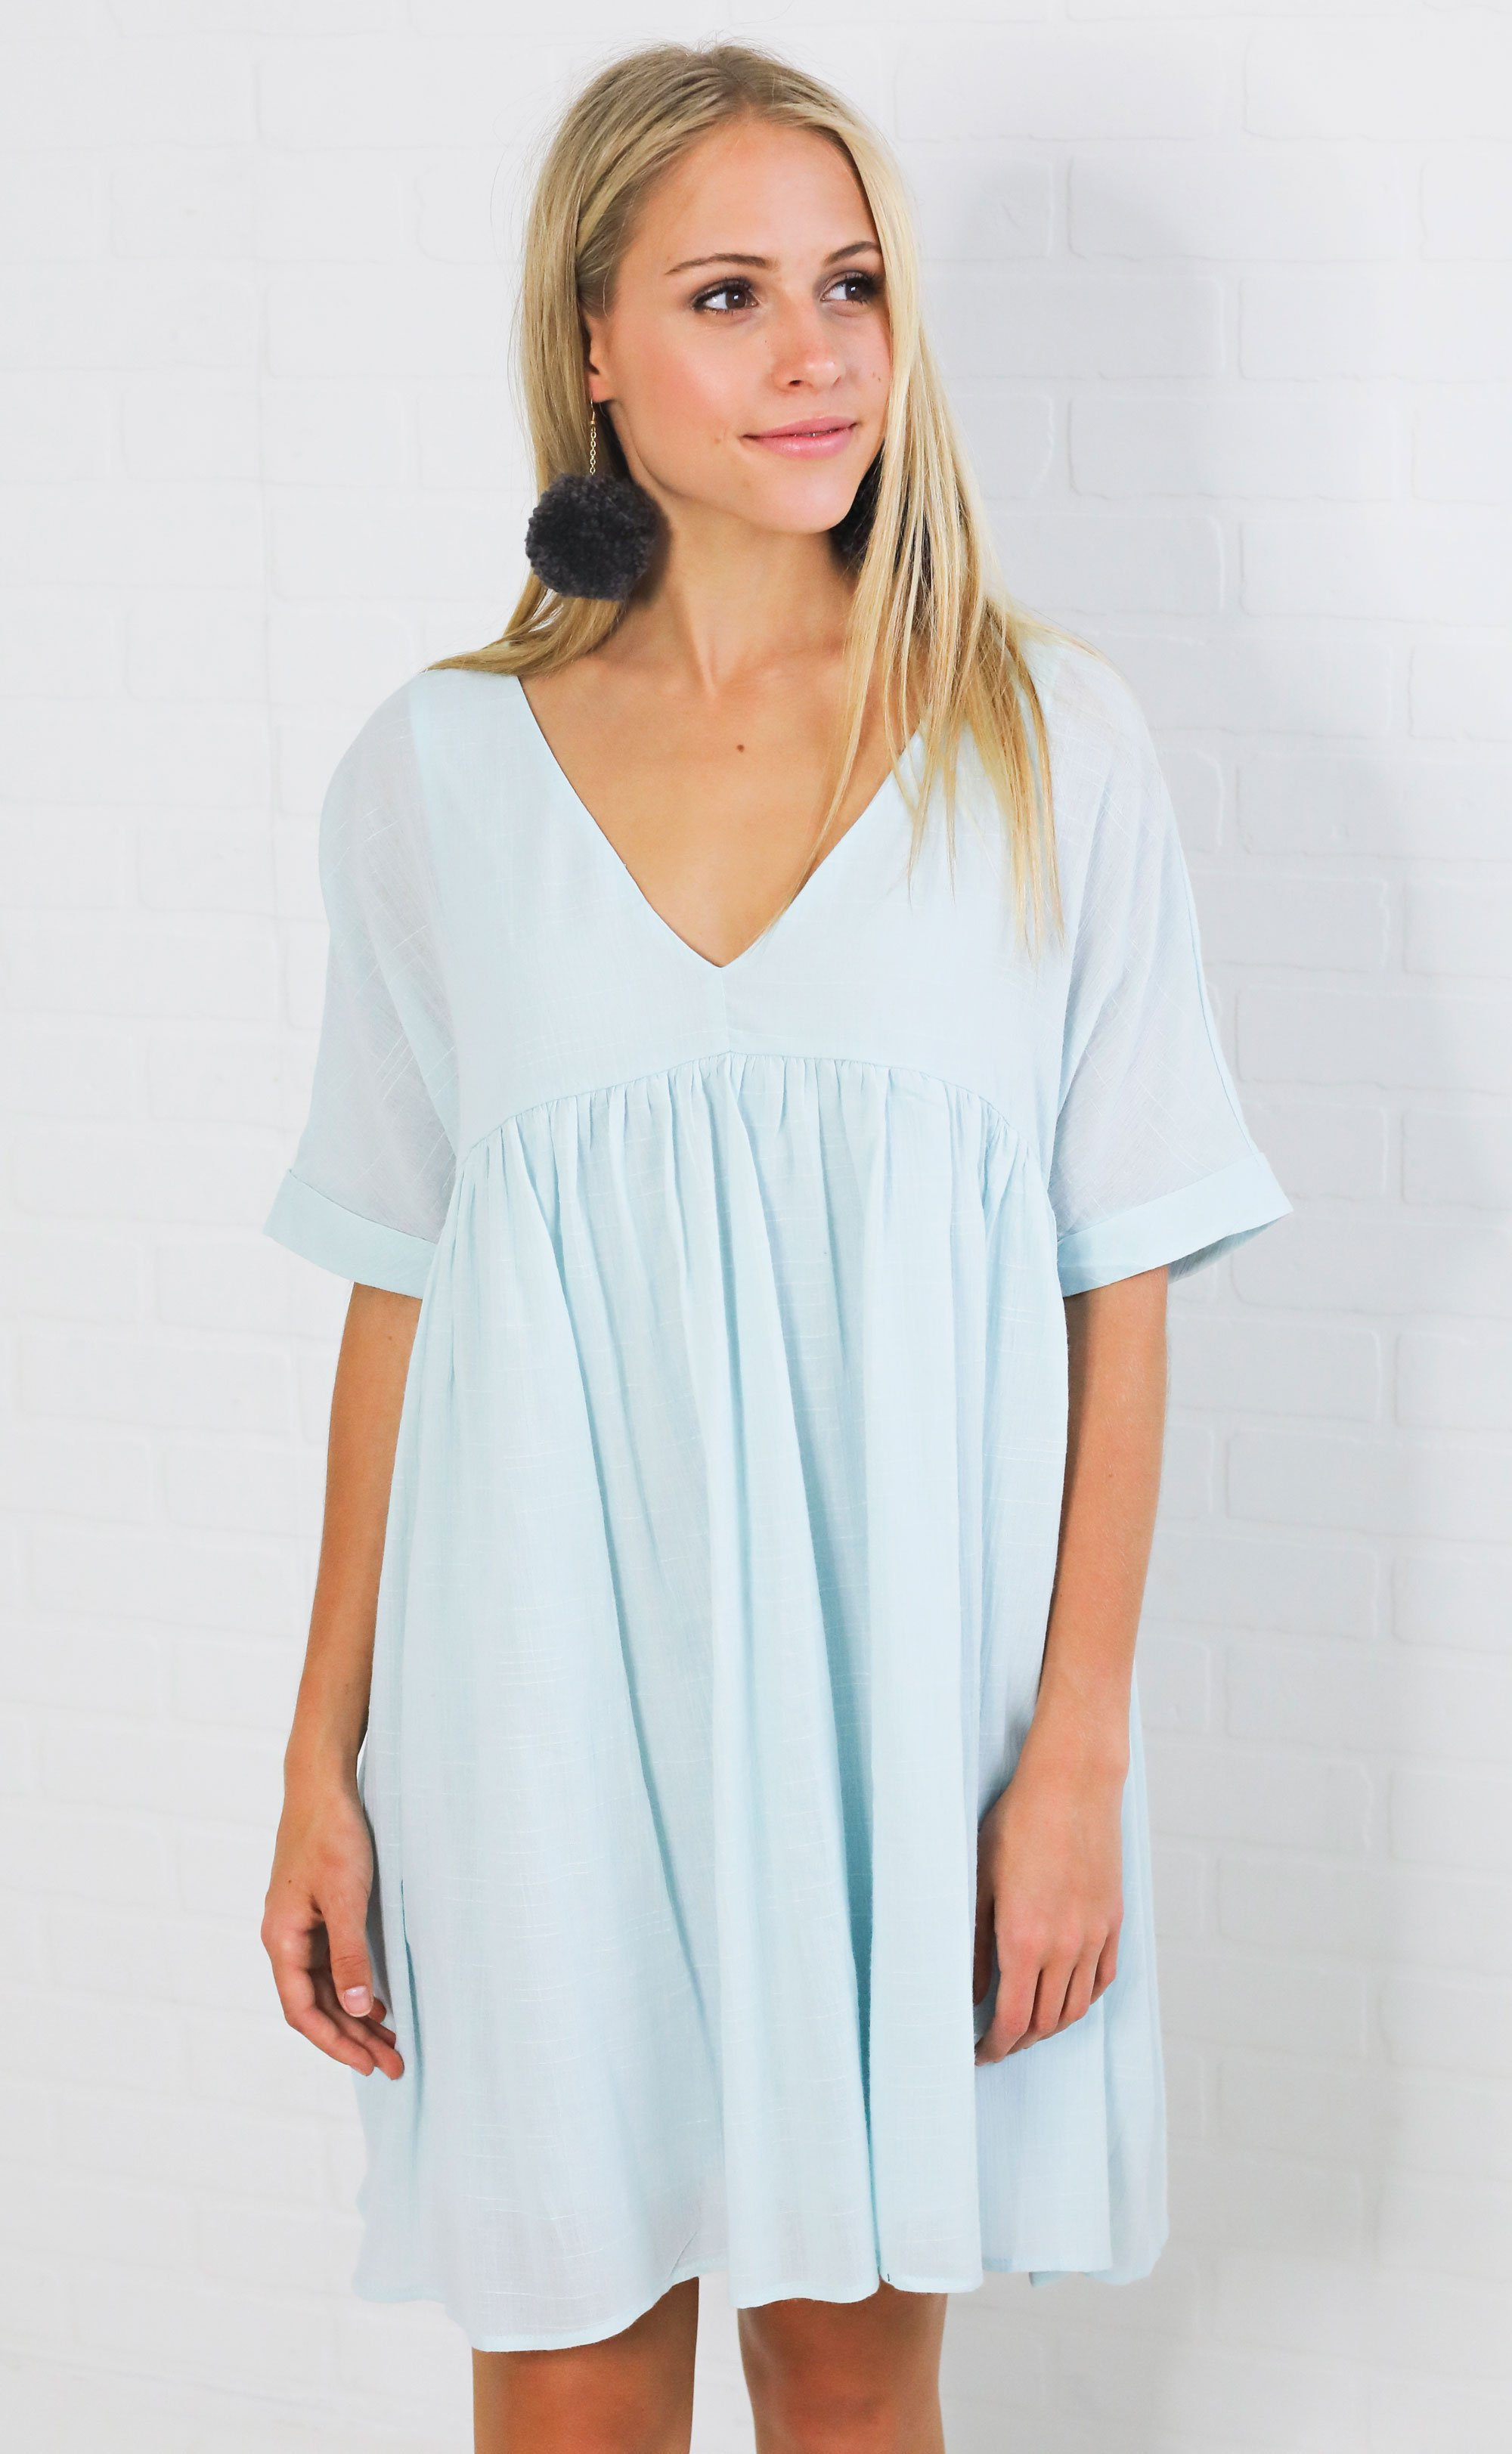 Sunkissed Babydoll Dress Blue Women Clothing Boutique Spring Outfits Blue Dresses [ 3246 x 2000 Pixel ]